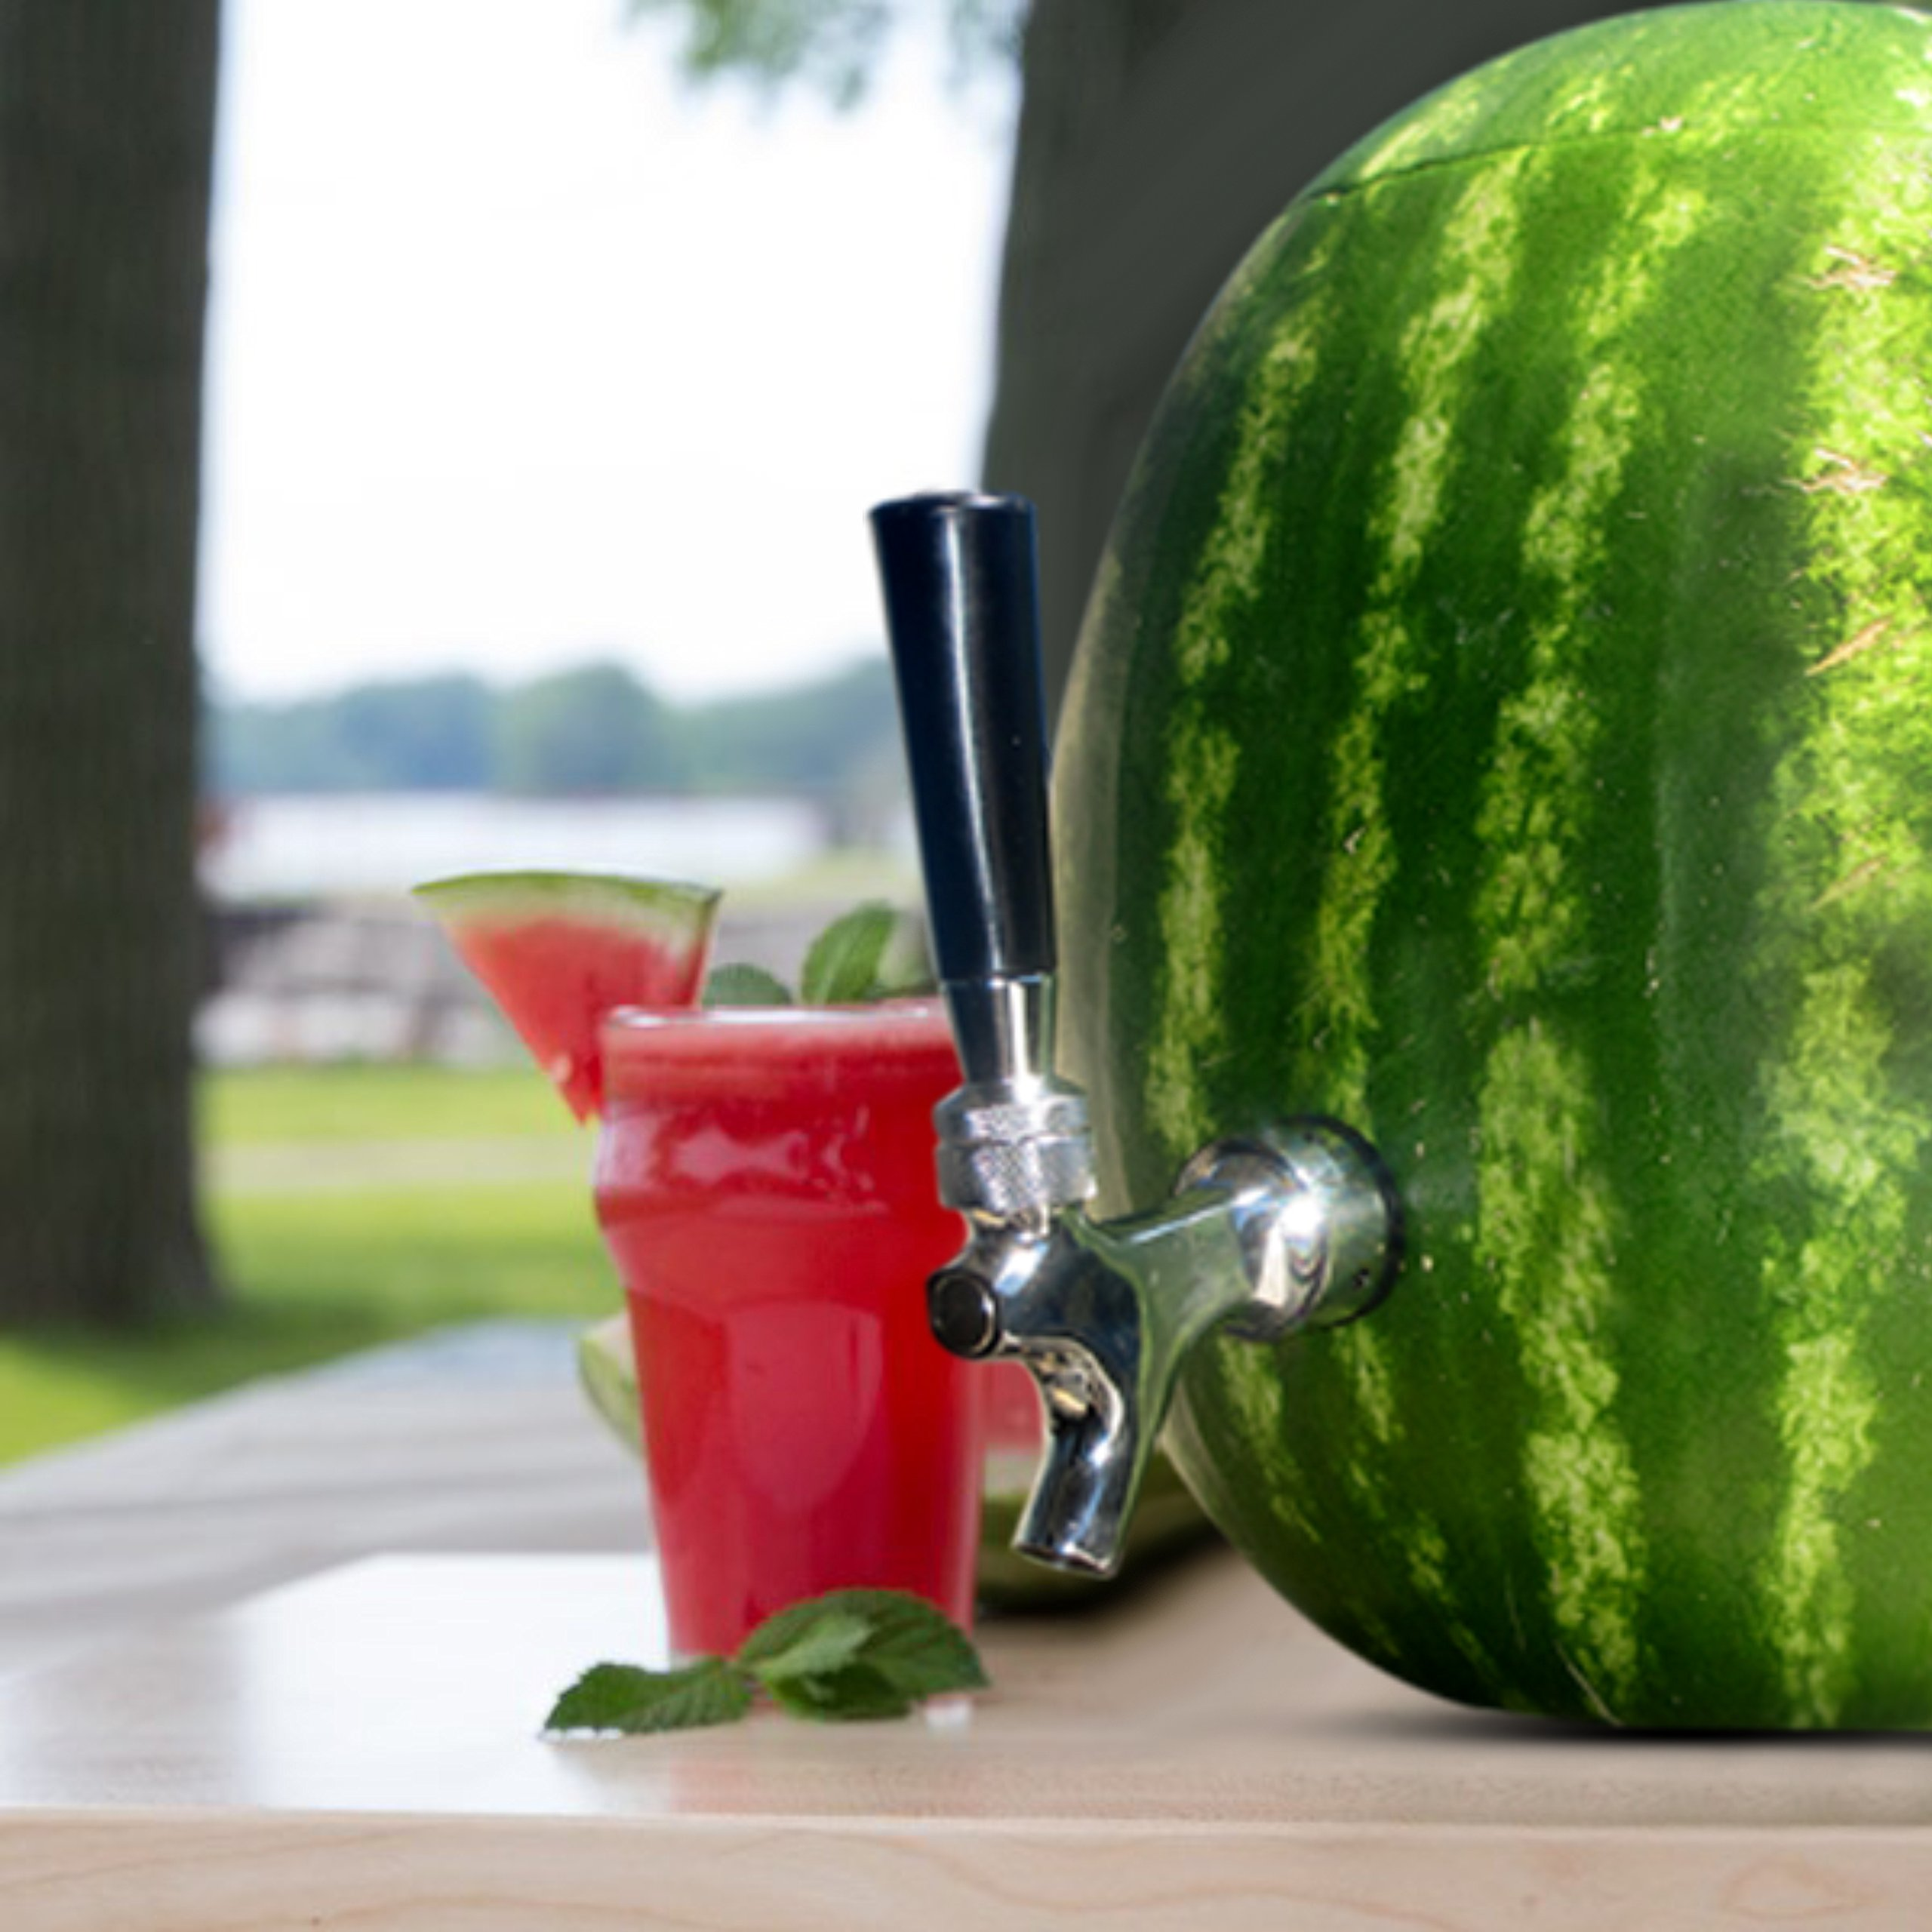 Blazin' Watermelon Tap - Brass and Chrome Keg Kit - Pumpkin Fruit Ice Tea Drink Dispenser